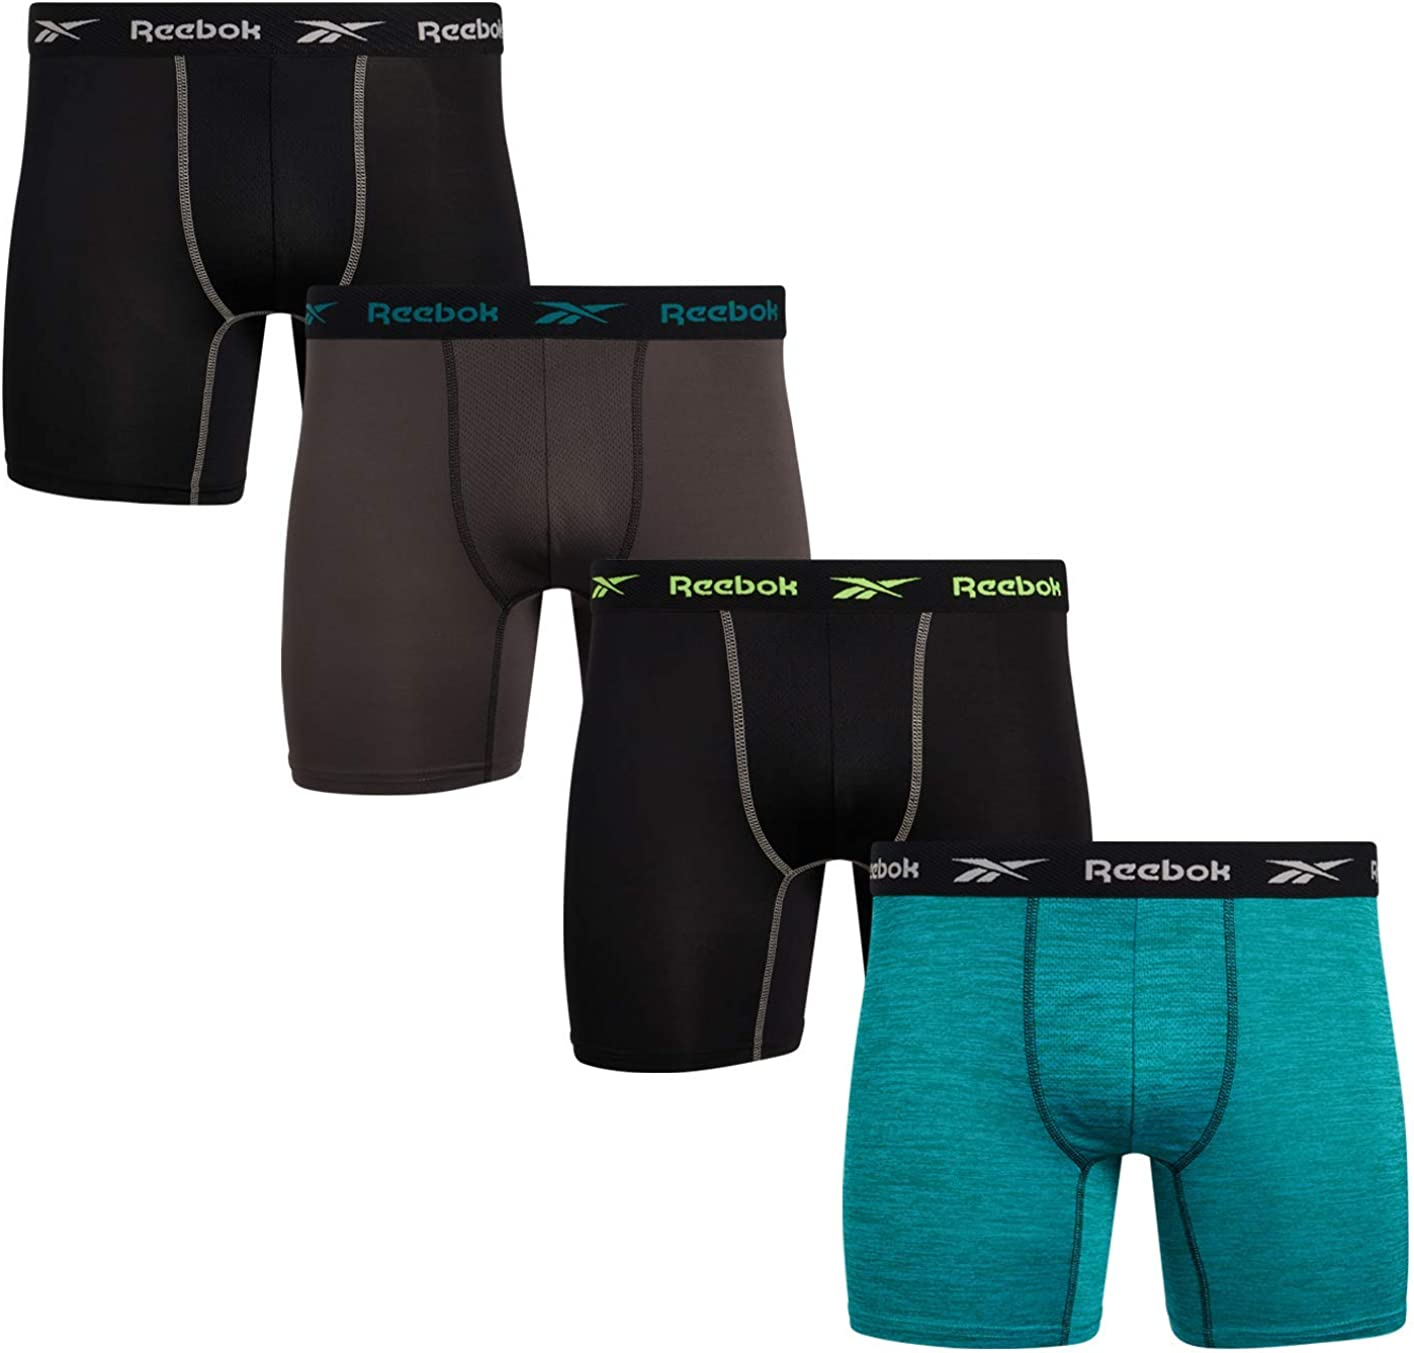 Reebok Men's Performance Boxer Briefs with Comfort Pouch (4 Pack)